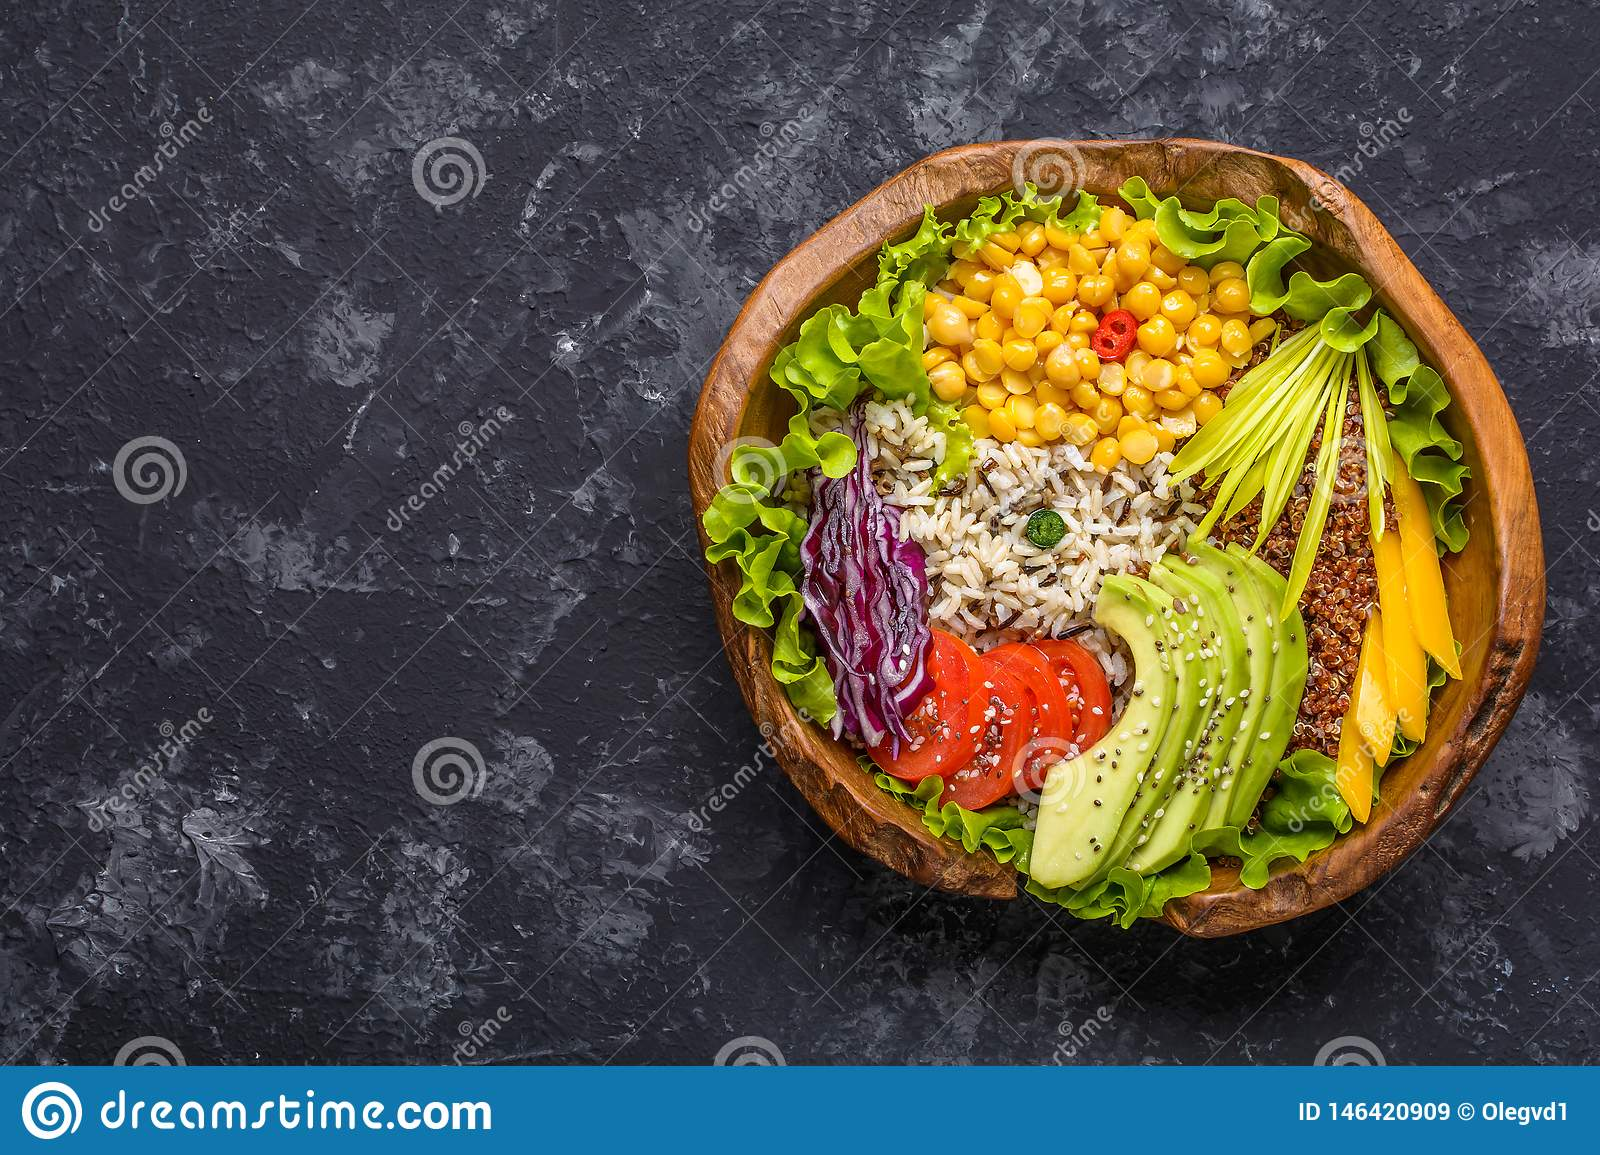 Buddha bowl with chickpea, avocado, wild rice, quinoa seeds, bell pepper, tomatoes, greens, cabbage, lettuce on dark stone table.